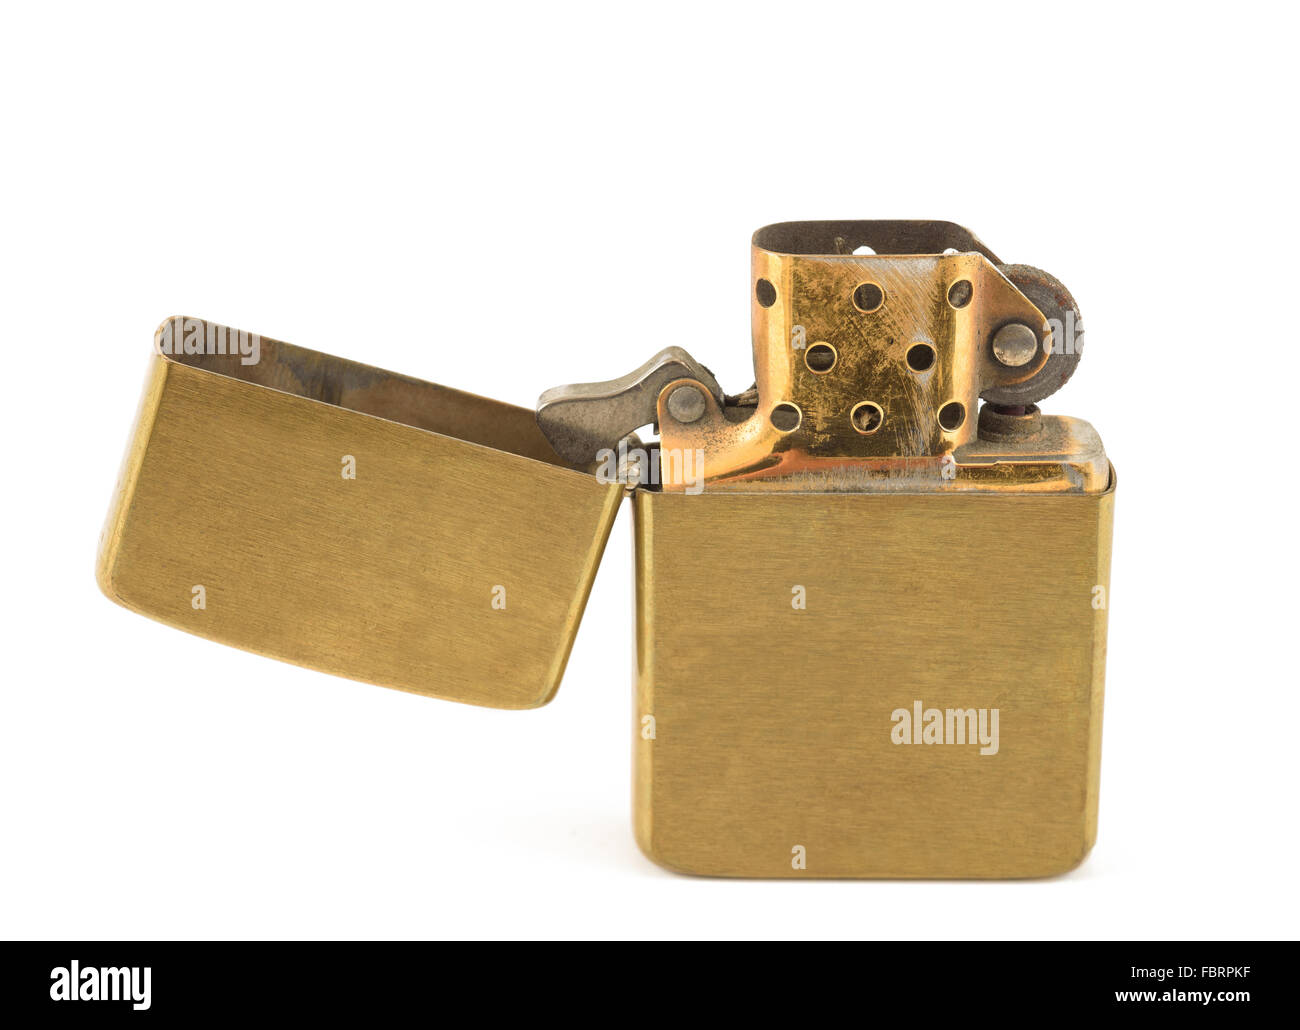 A vintage zippo lighter opened isolated on white. - Stock Image